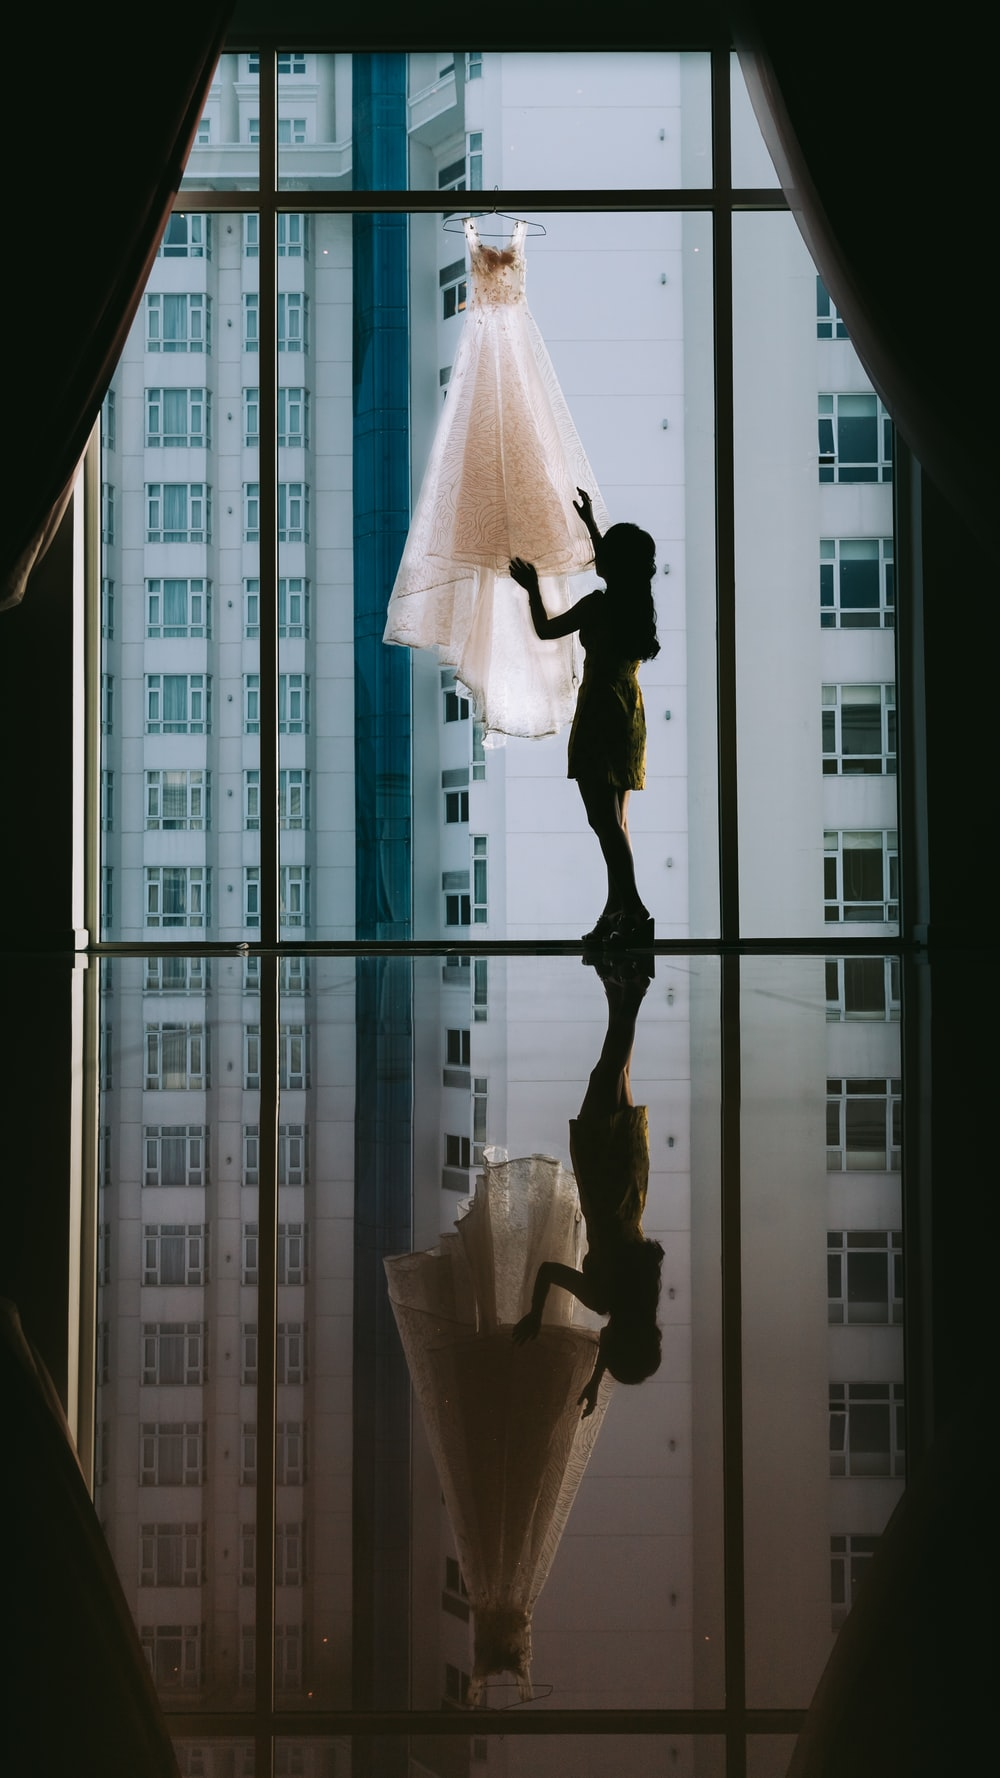 women's white gown hanged on clear glass window